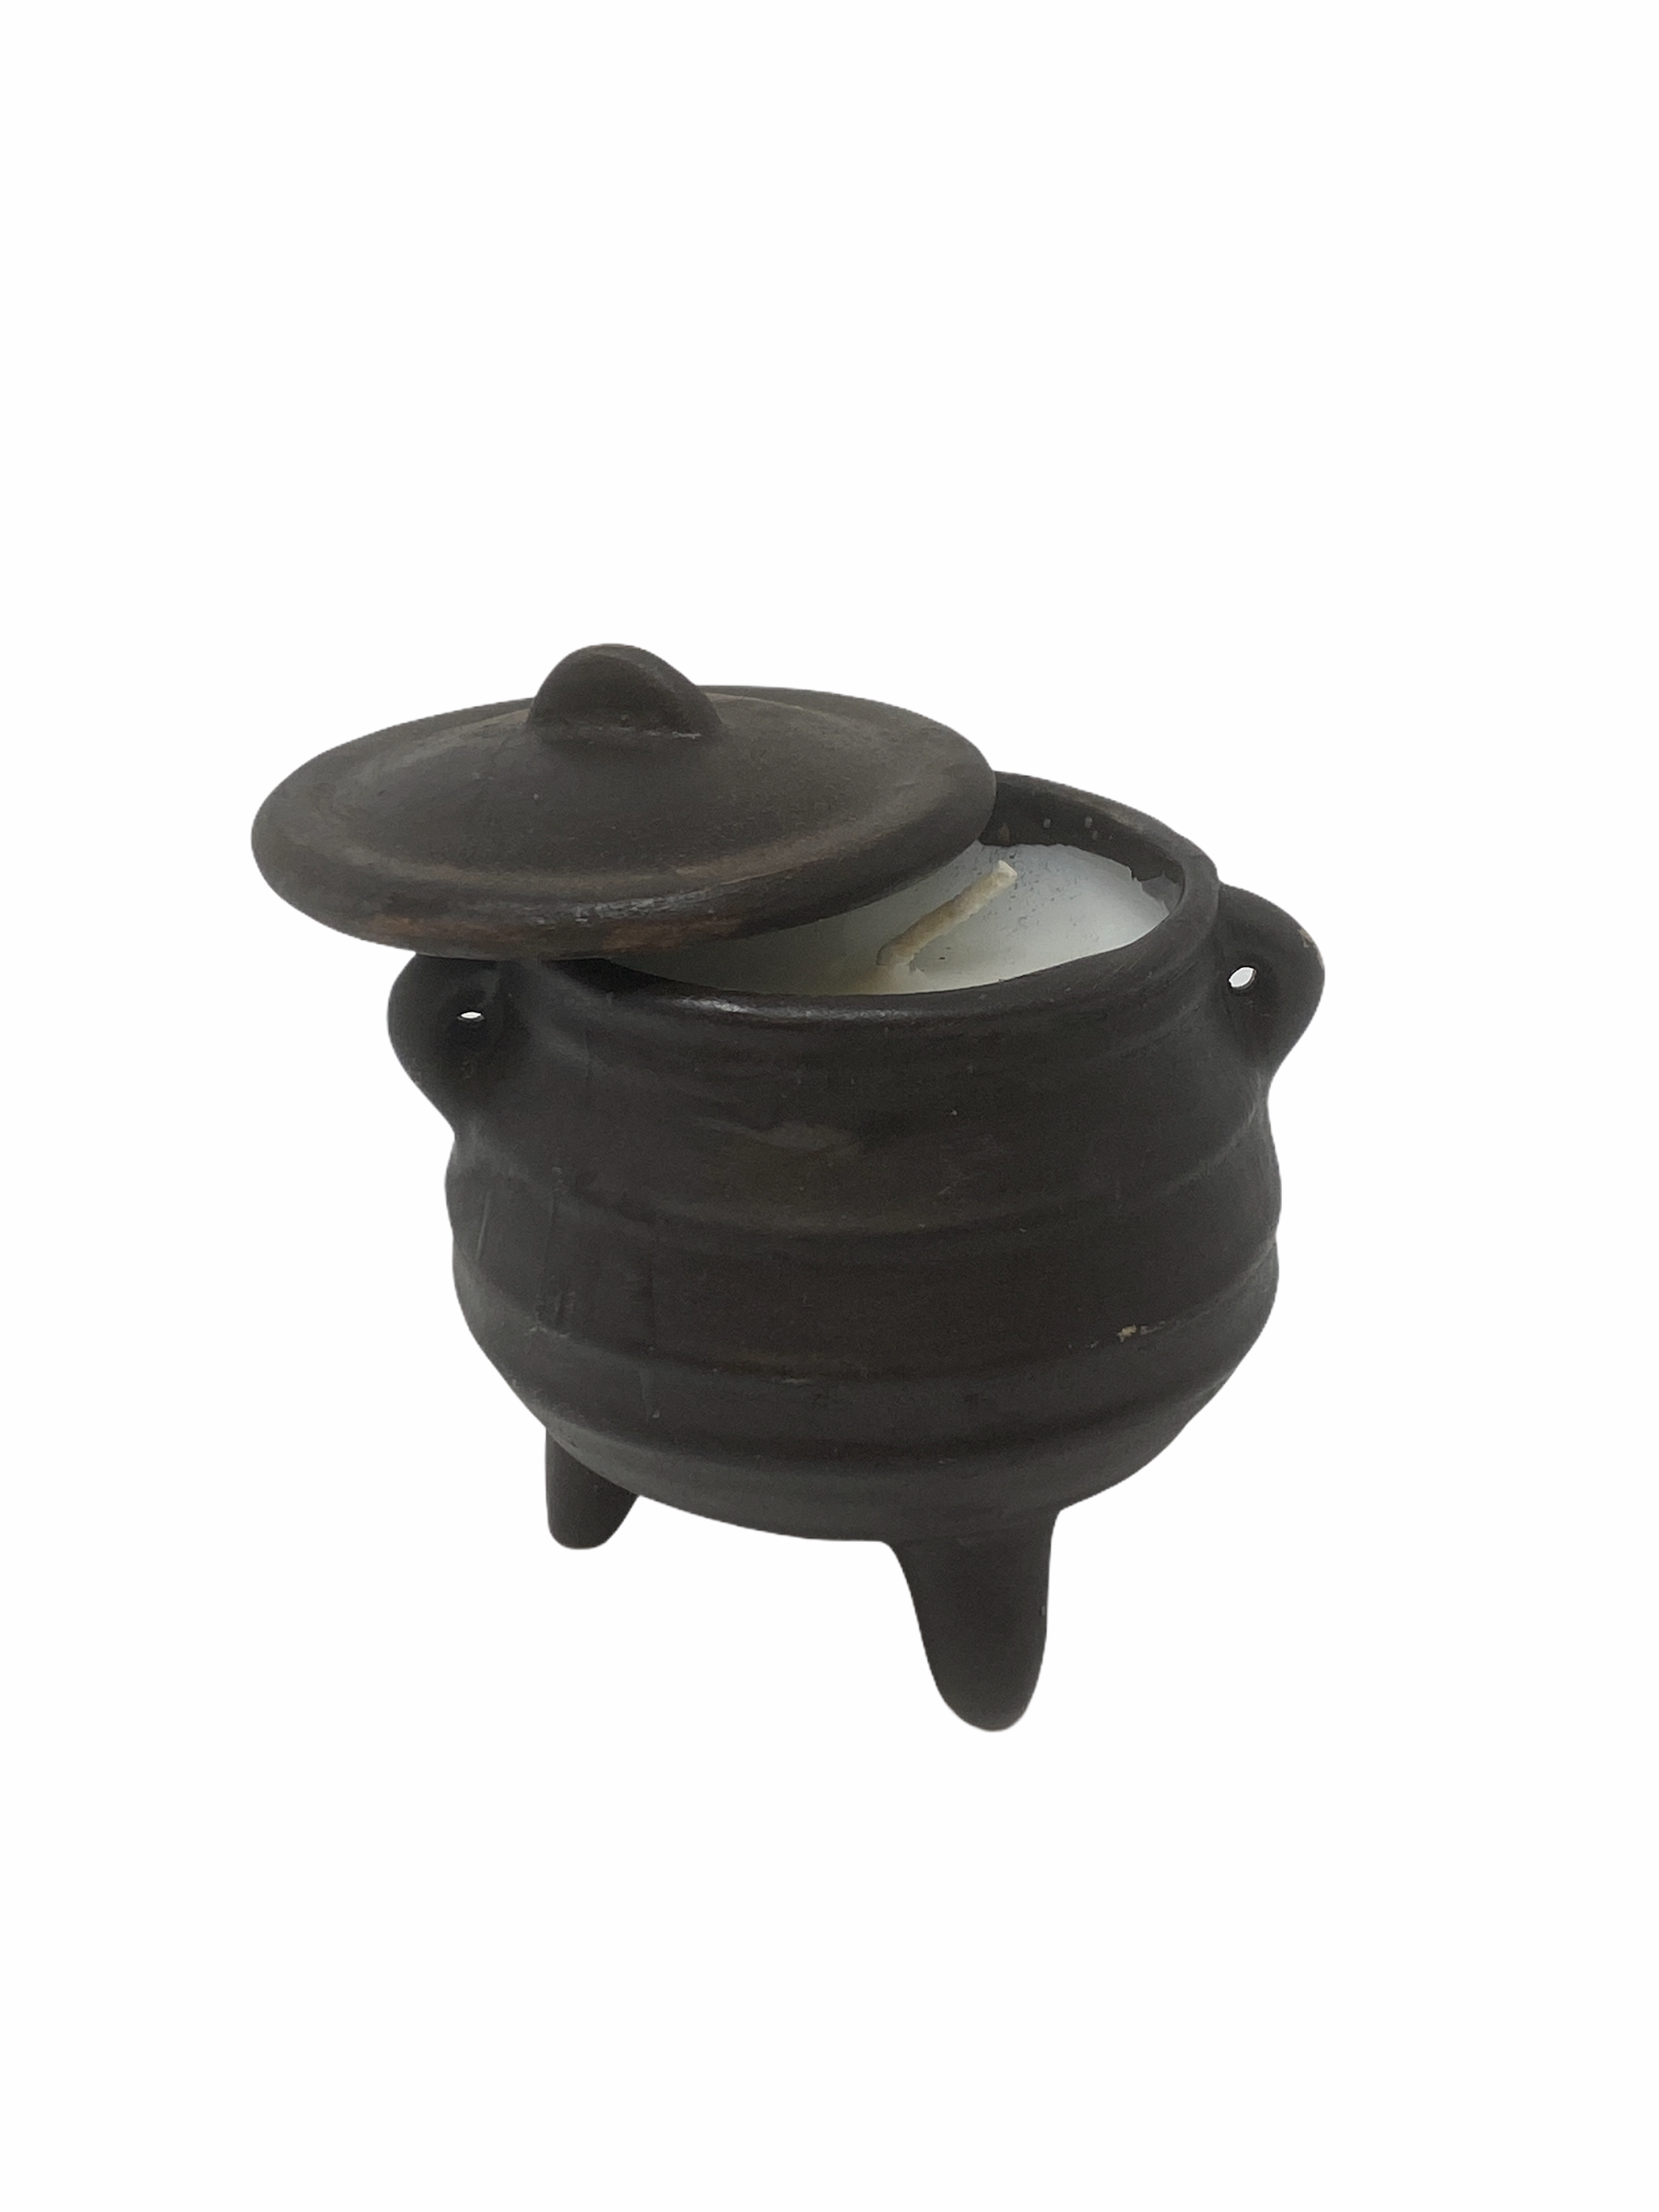 Potjie Pot candle - S 40 hours 9cmx9cm